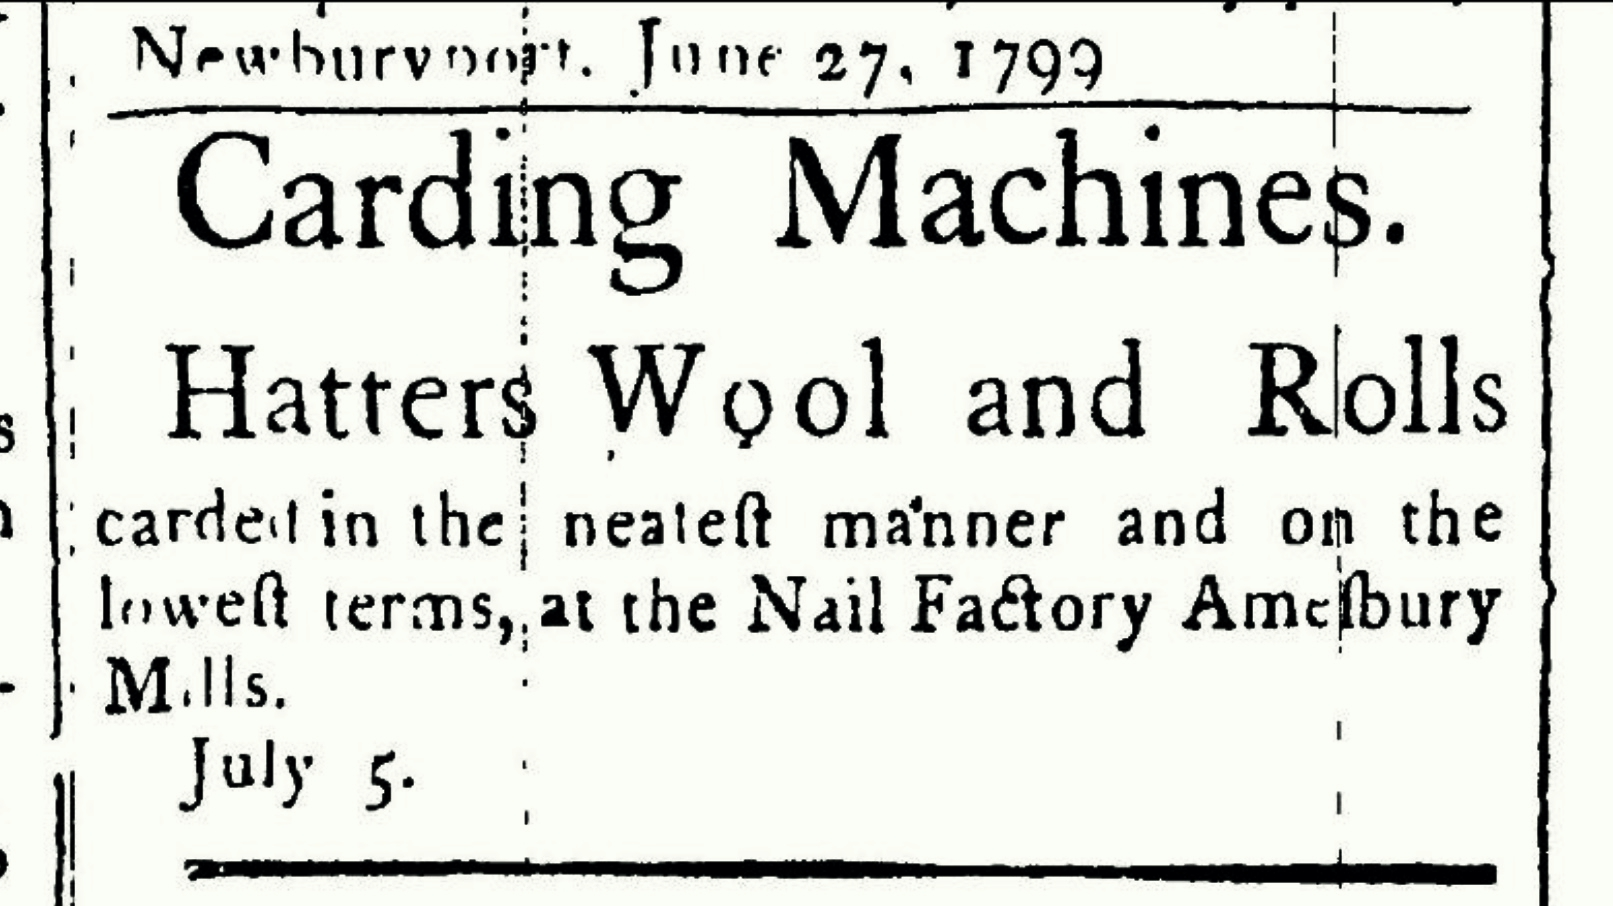 An advertisement from the Newburyport Herald and Gazetter published on June 27, 1799 invites customers to have wool carded in the Nail Factory in the Amesbury Mills.